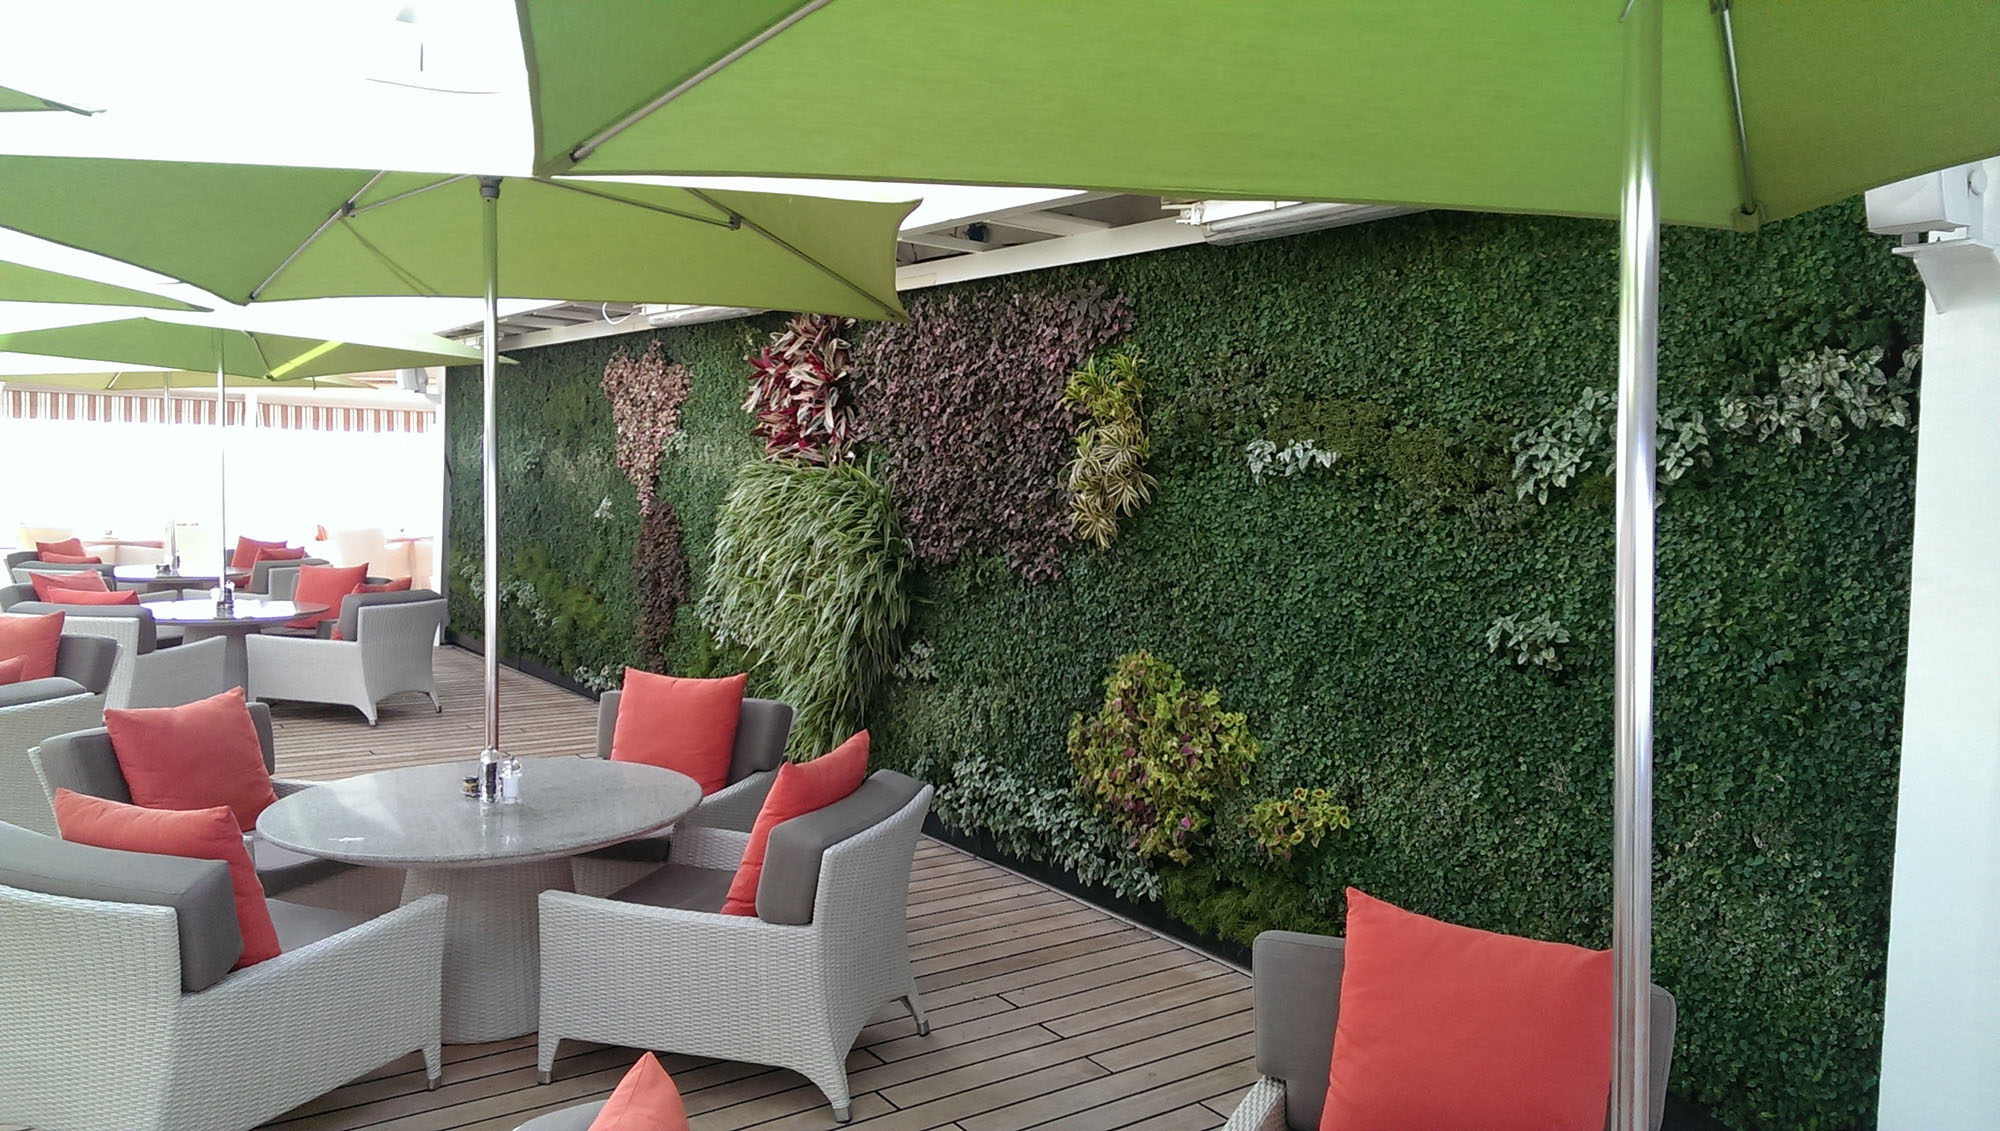 Eco wall on an outdoor patio area.